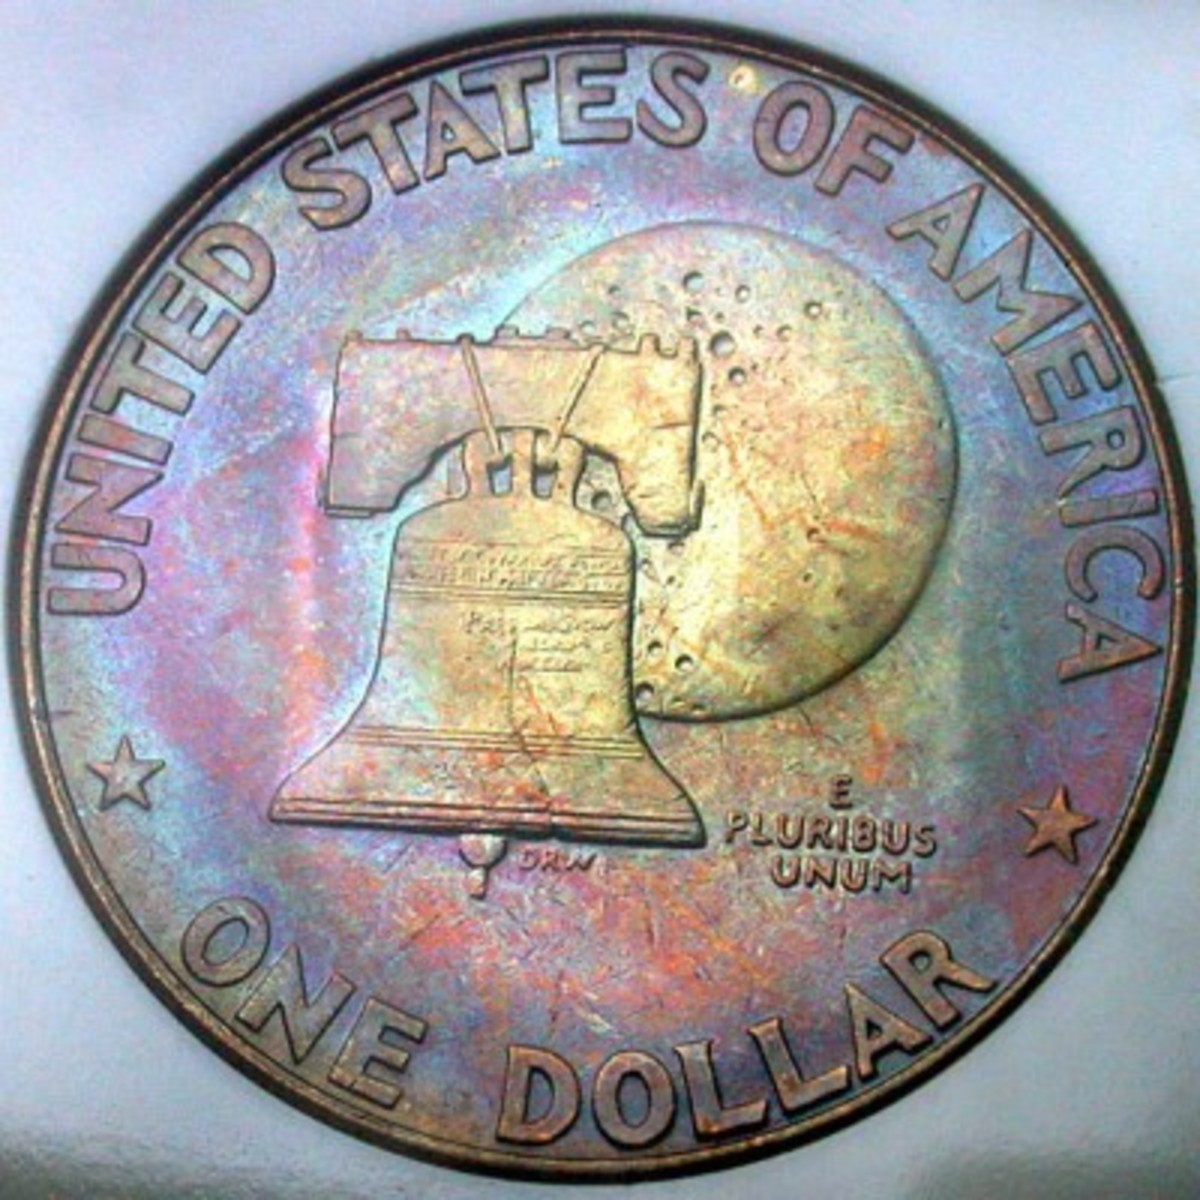 1976 Eisenhower Dollar Variety 1. Photo Courtesy Coinpage.com